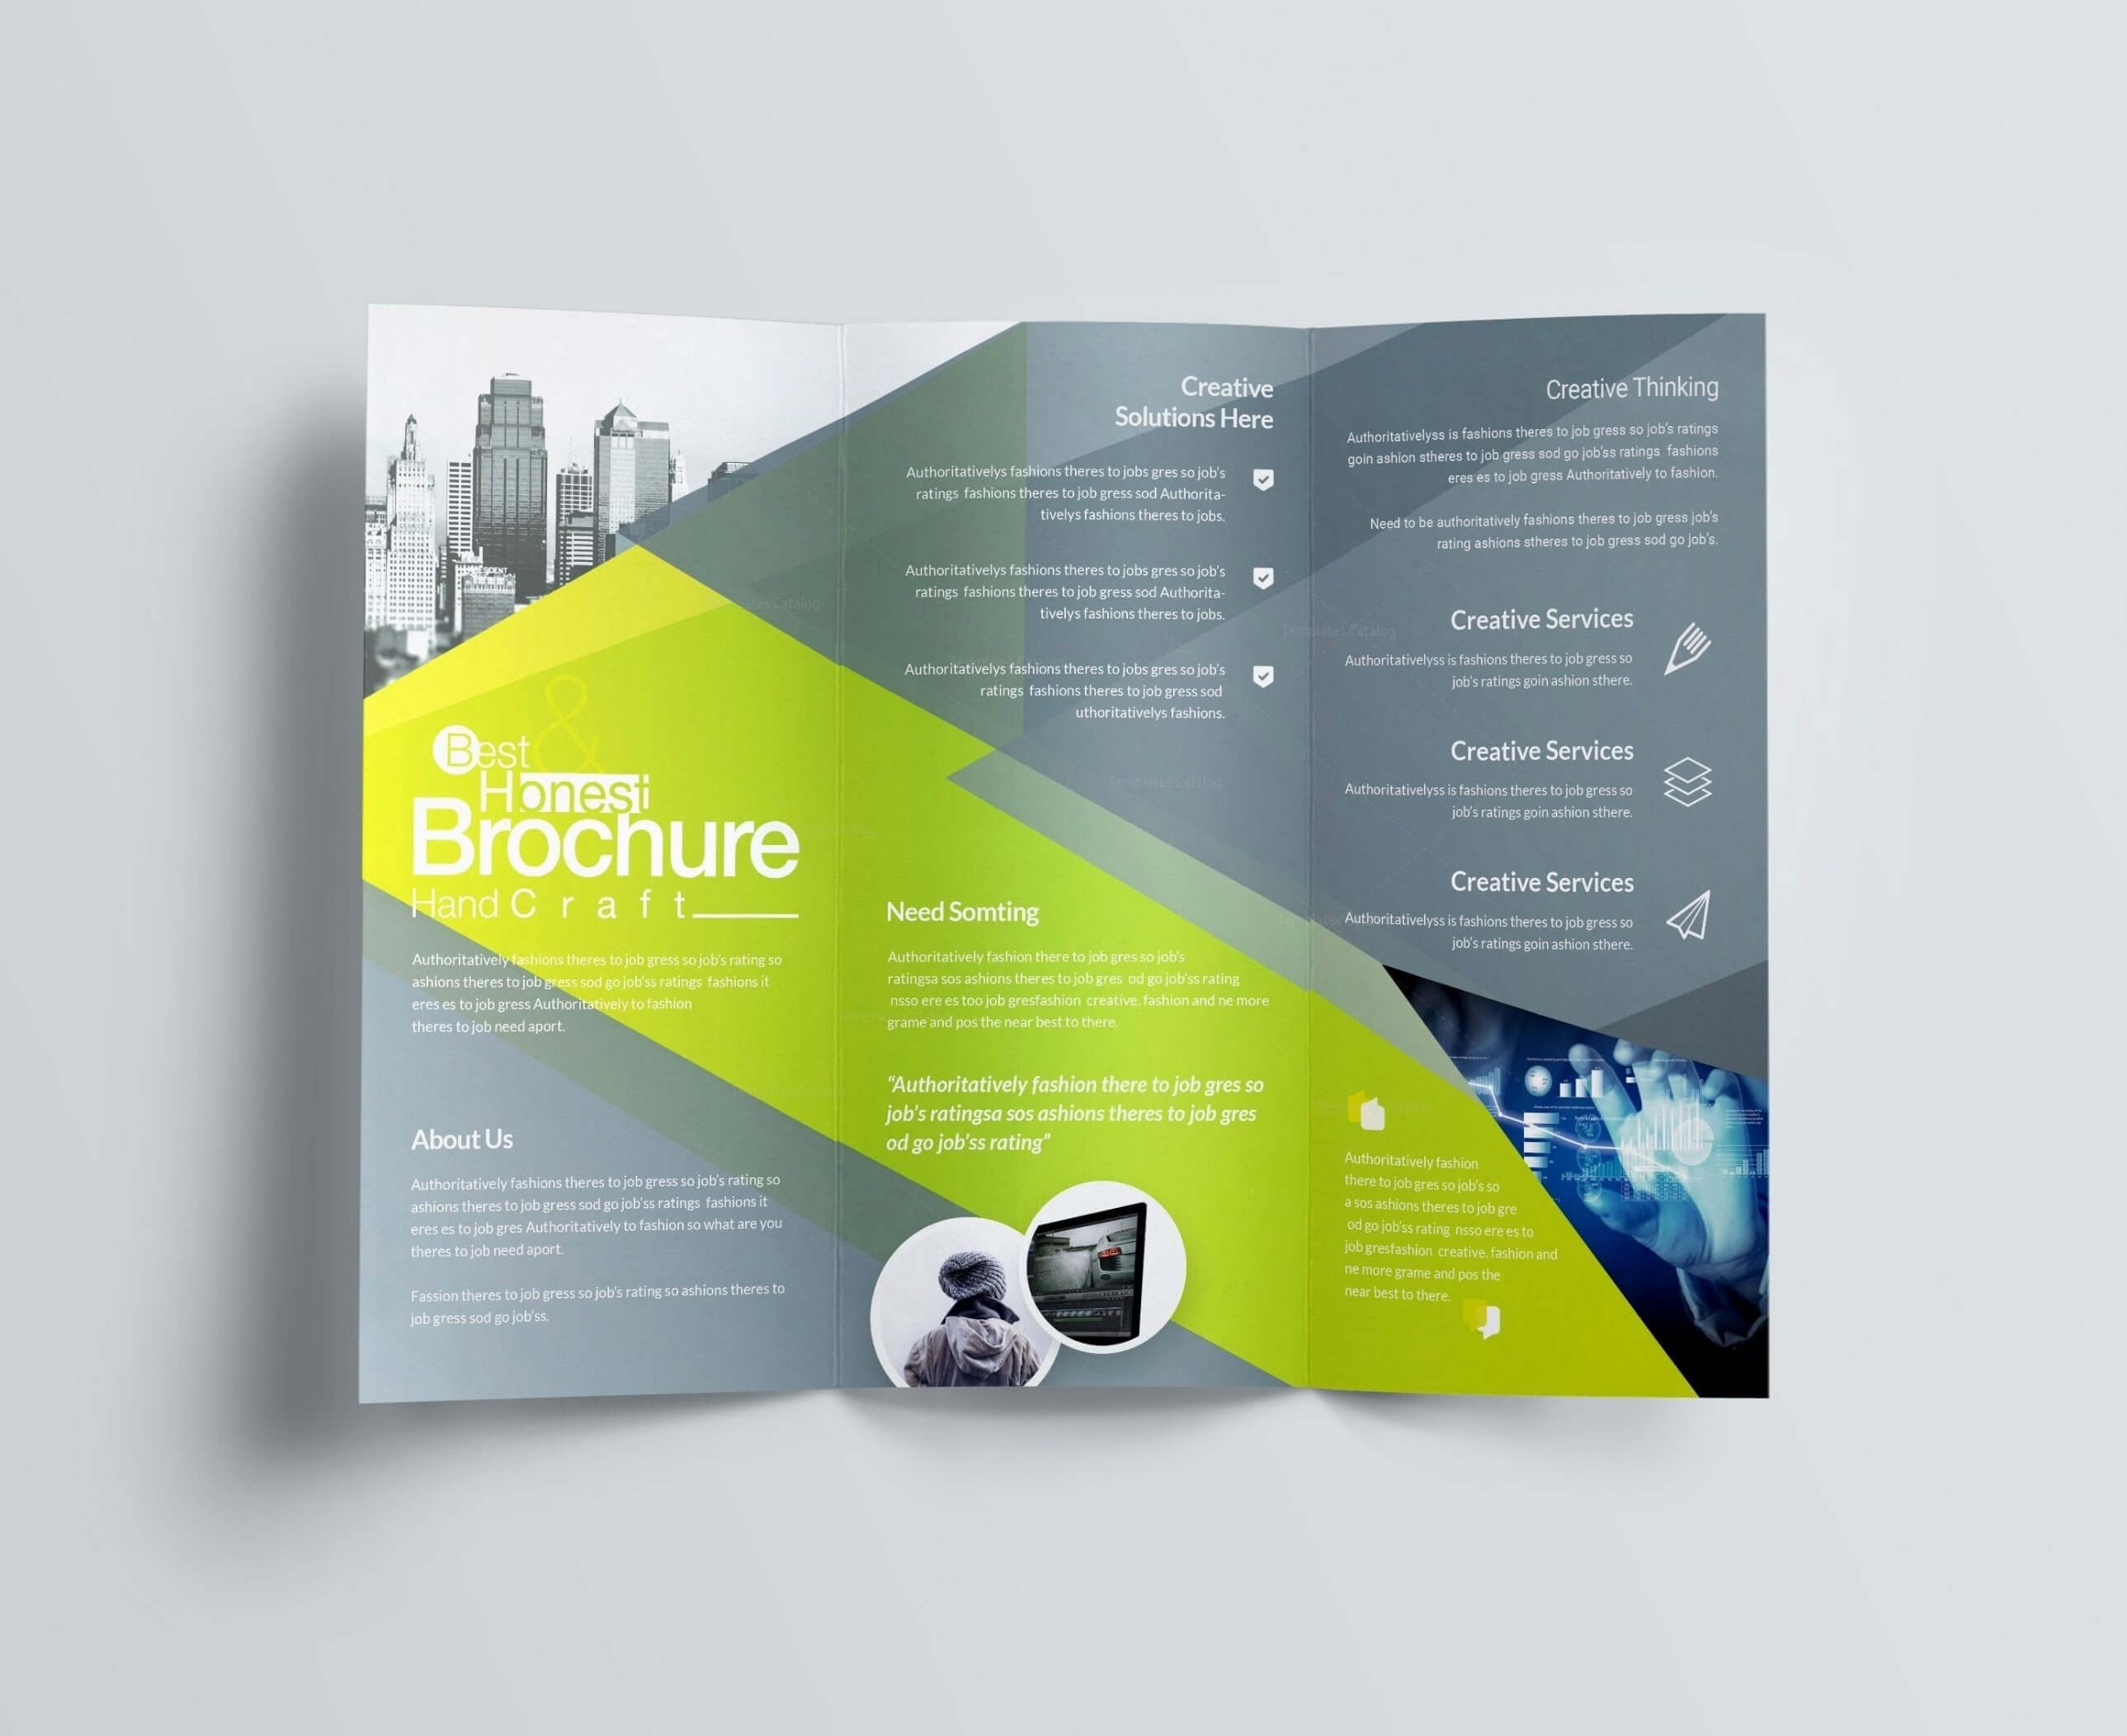 Computer Science Brochure Templates Design Free Download Throughout Creative Brochure Templates Free Download